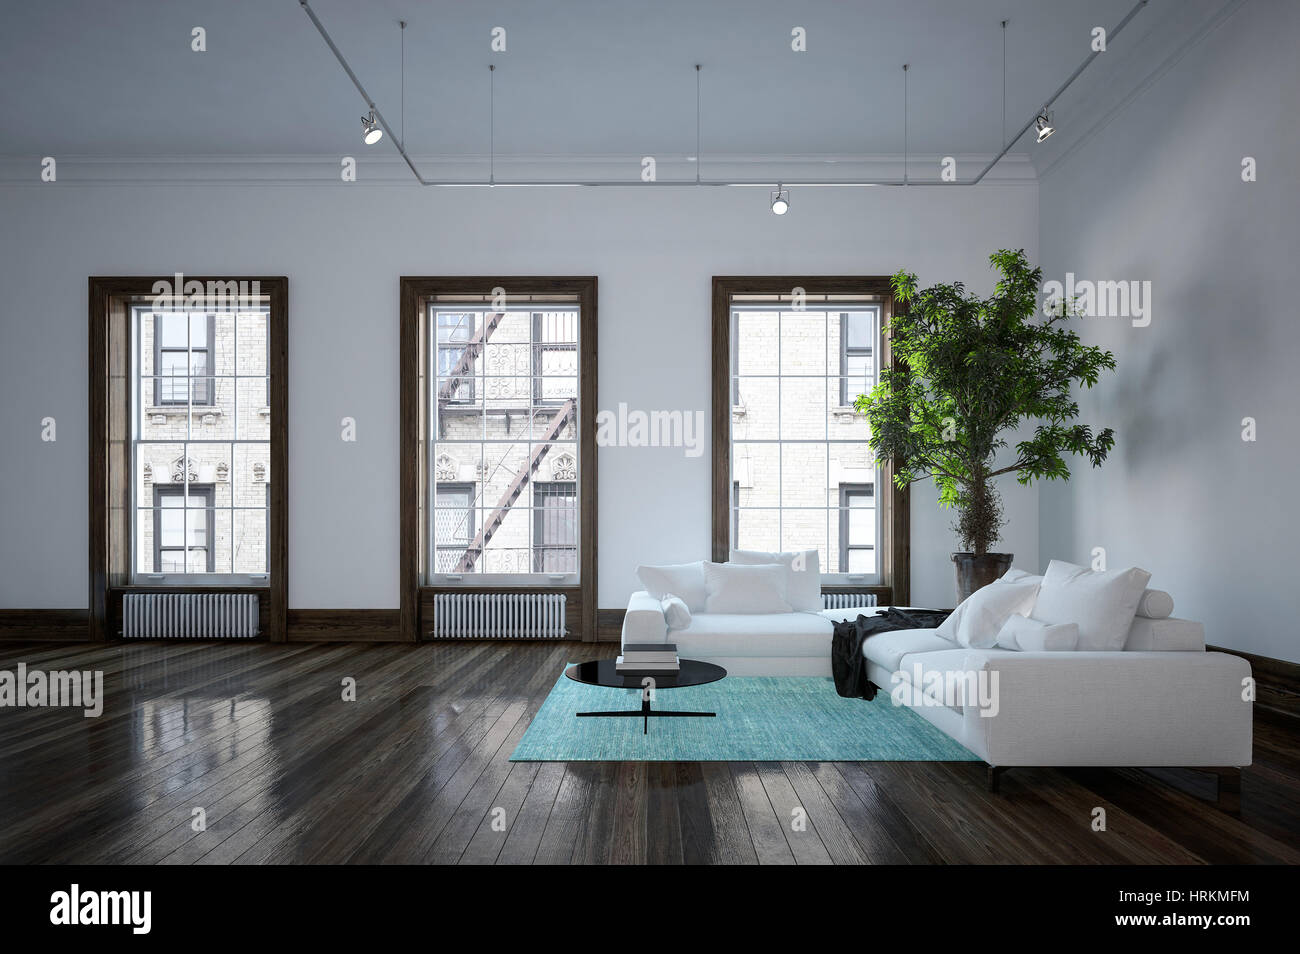 Minimalist Modern Urban Living Room Interior With Black And White Decor,  Corner Sofas On An Accent Green Rug And A Large Potted Plant In Front Of  Thre